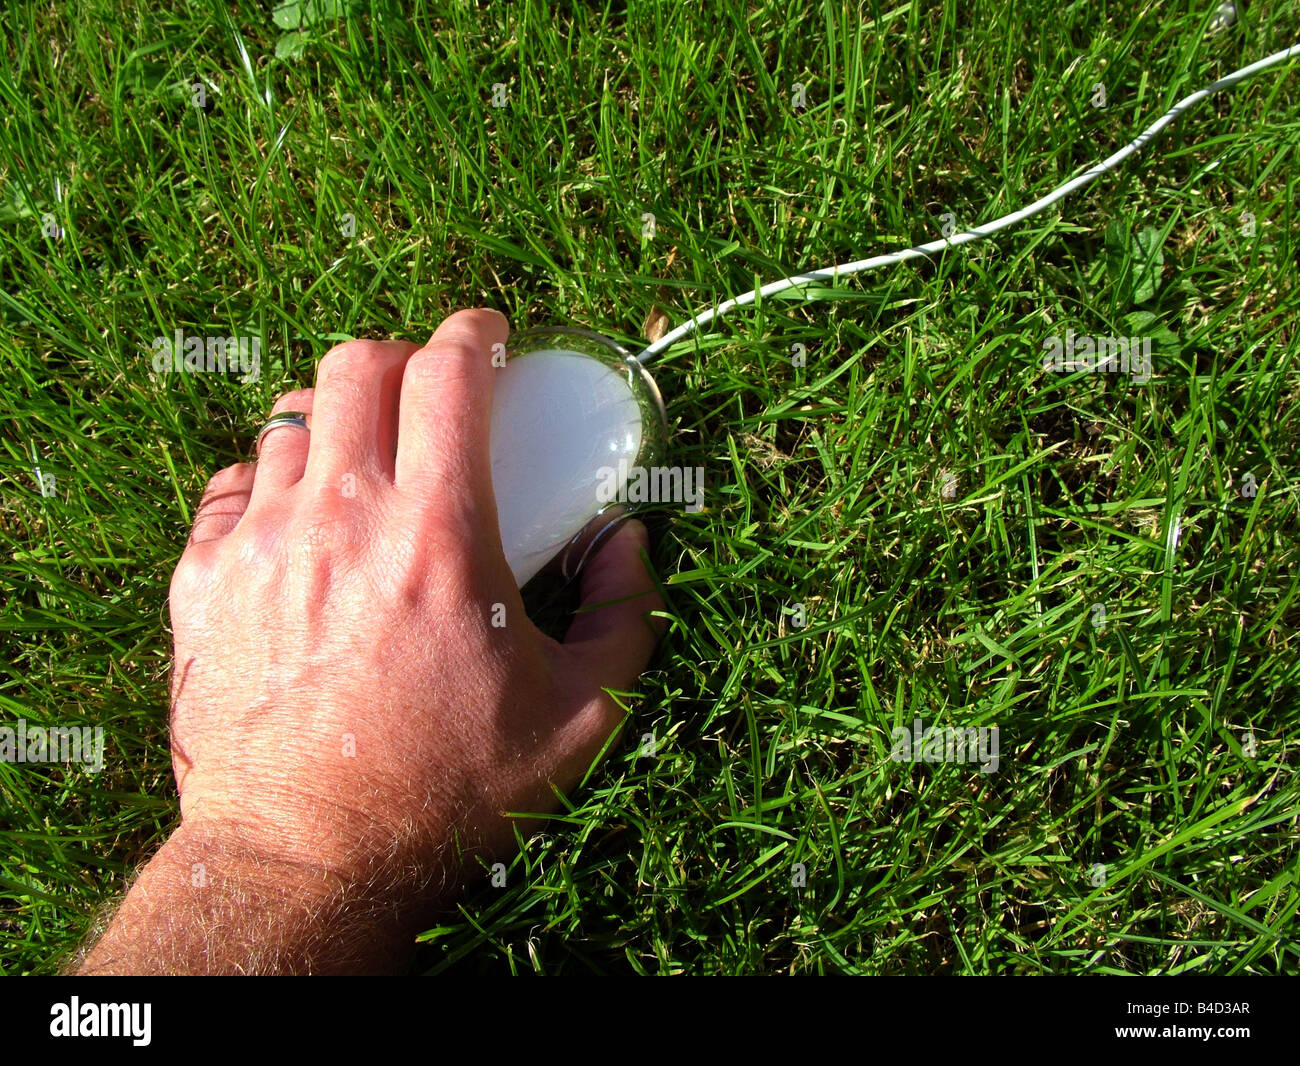 Hand holding computer mouse Stock Photo